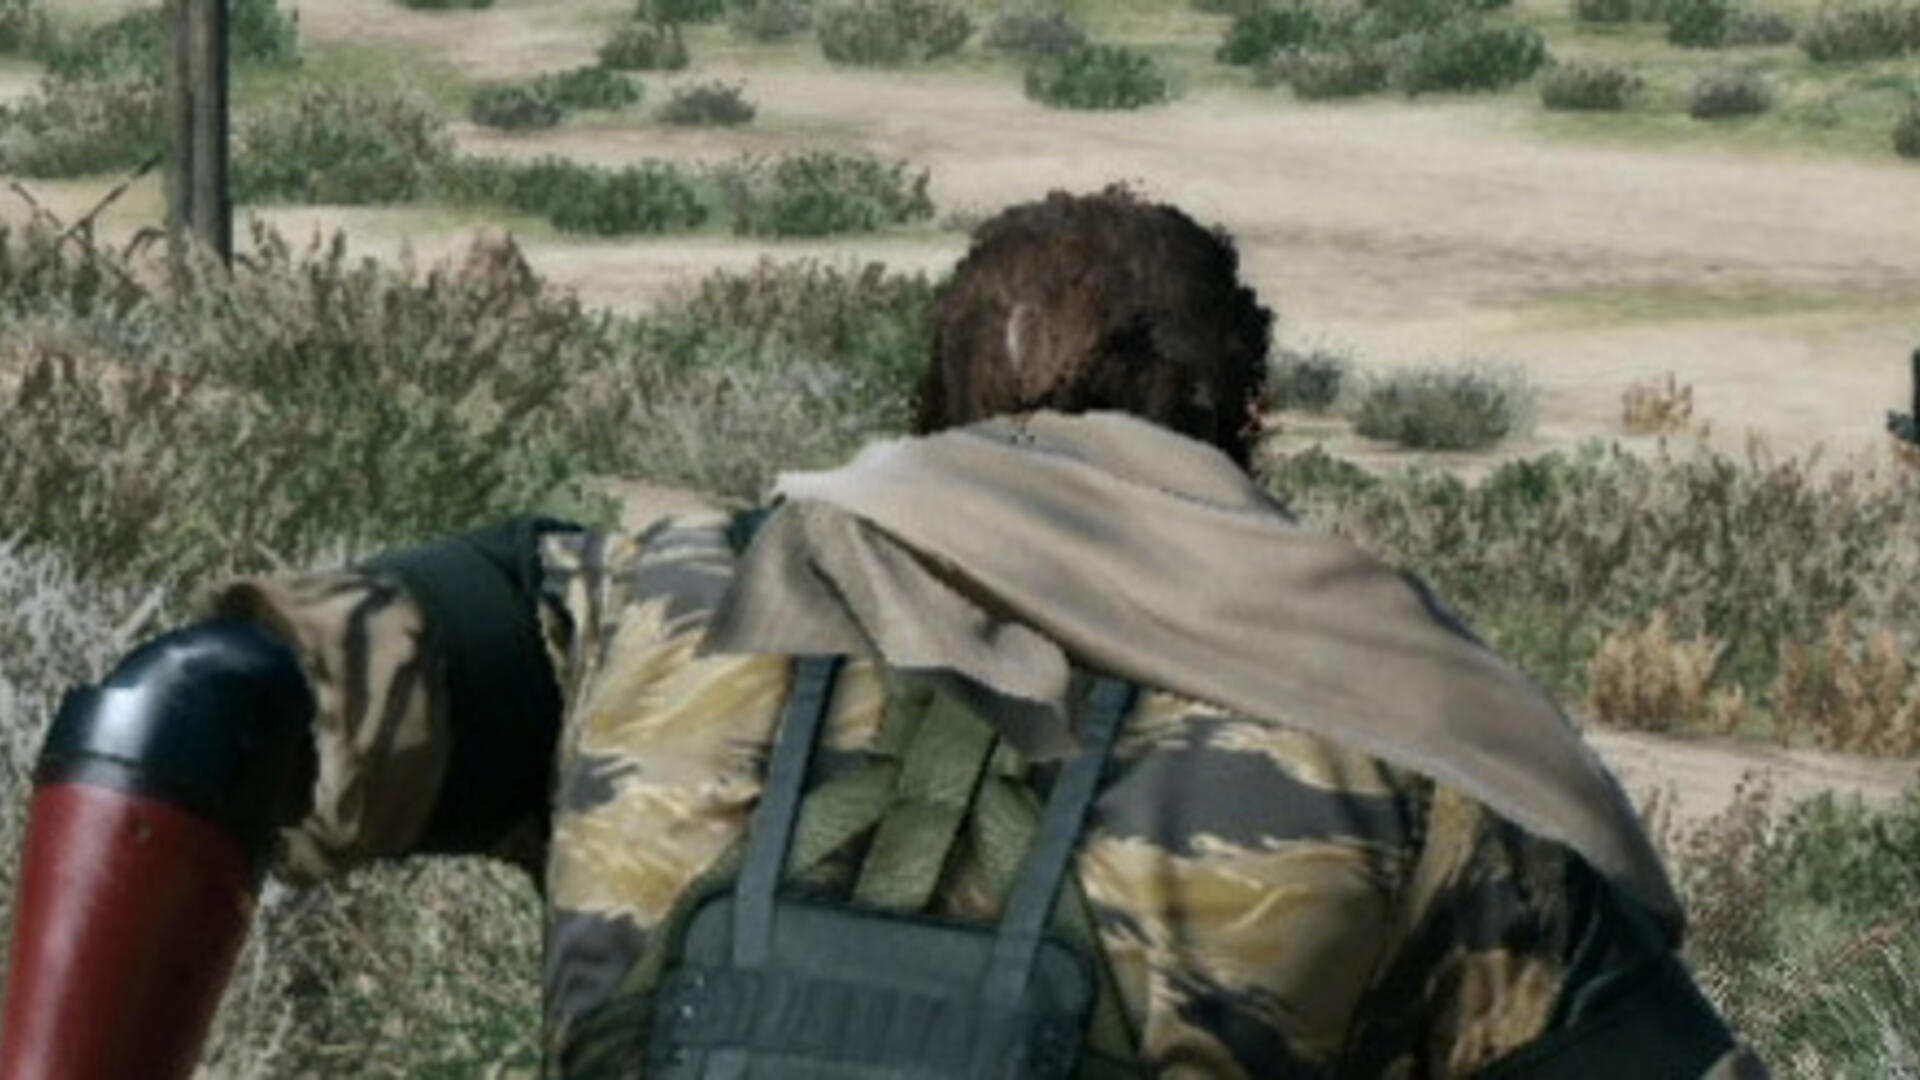 metal gear solid 5 guide